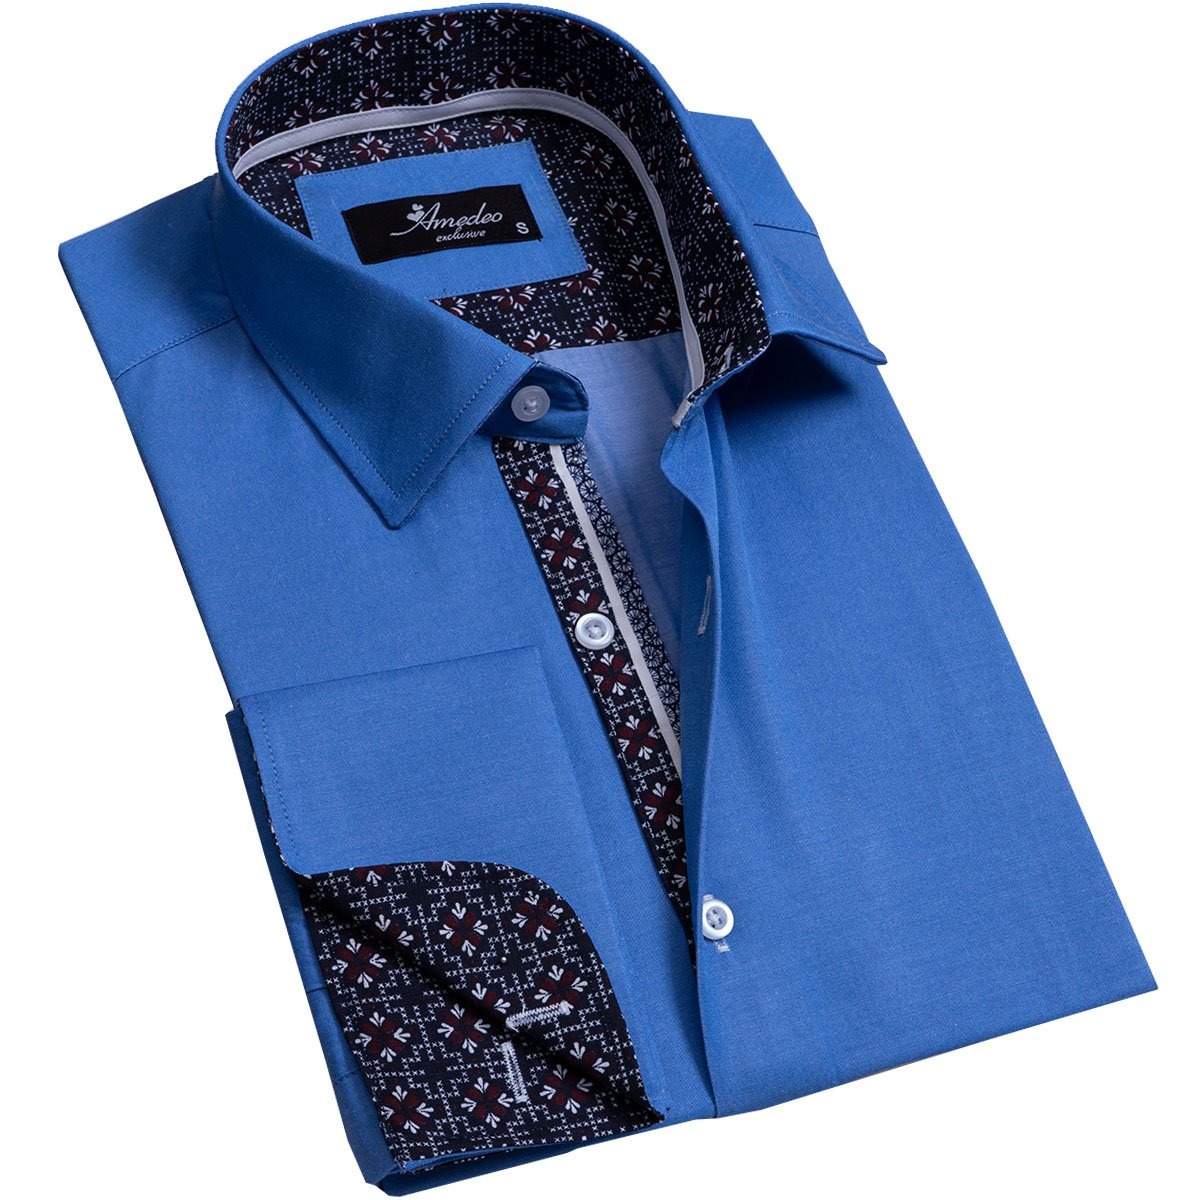 Solid Medium Blue Mens Slim Fit French Cuff Dress Shirts with Cufflink Holes - Casual and Formal - Amedeo Exclusive